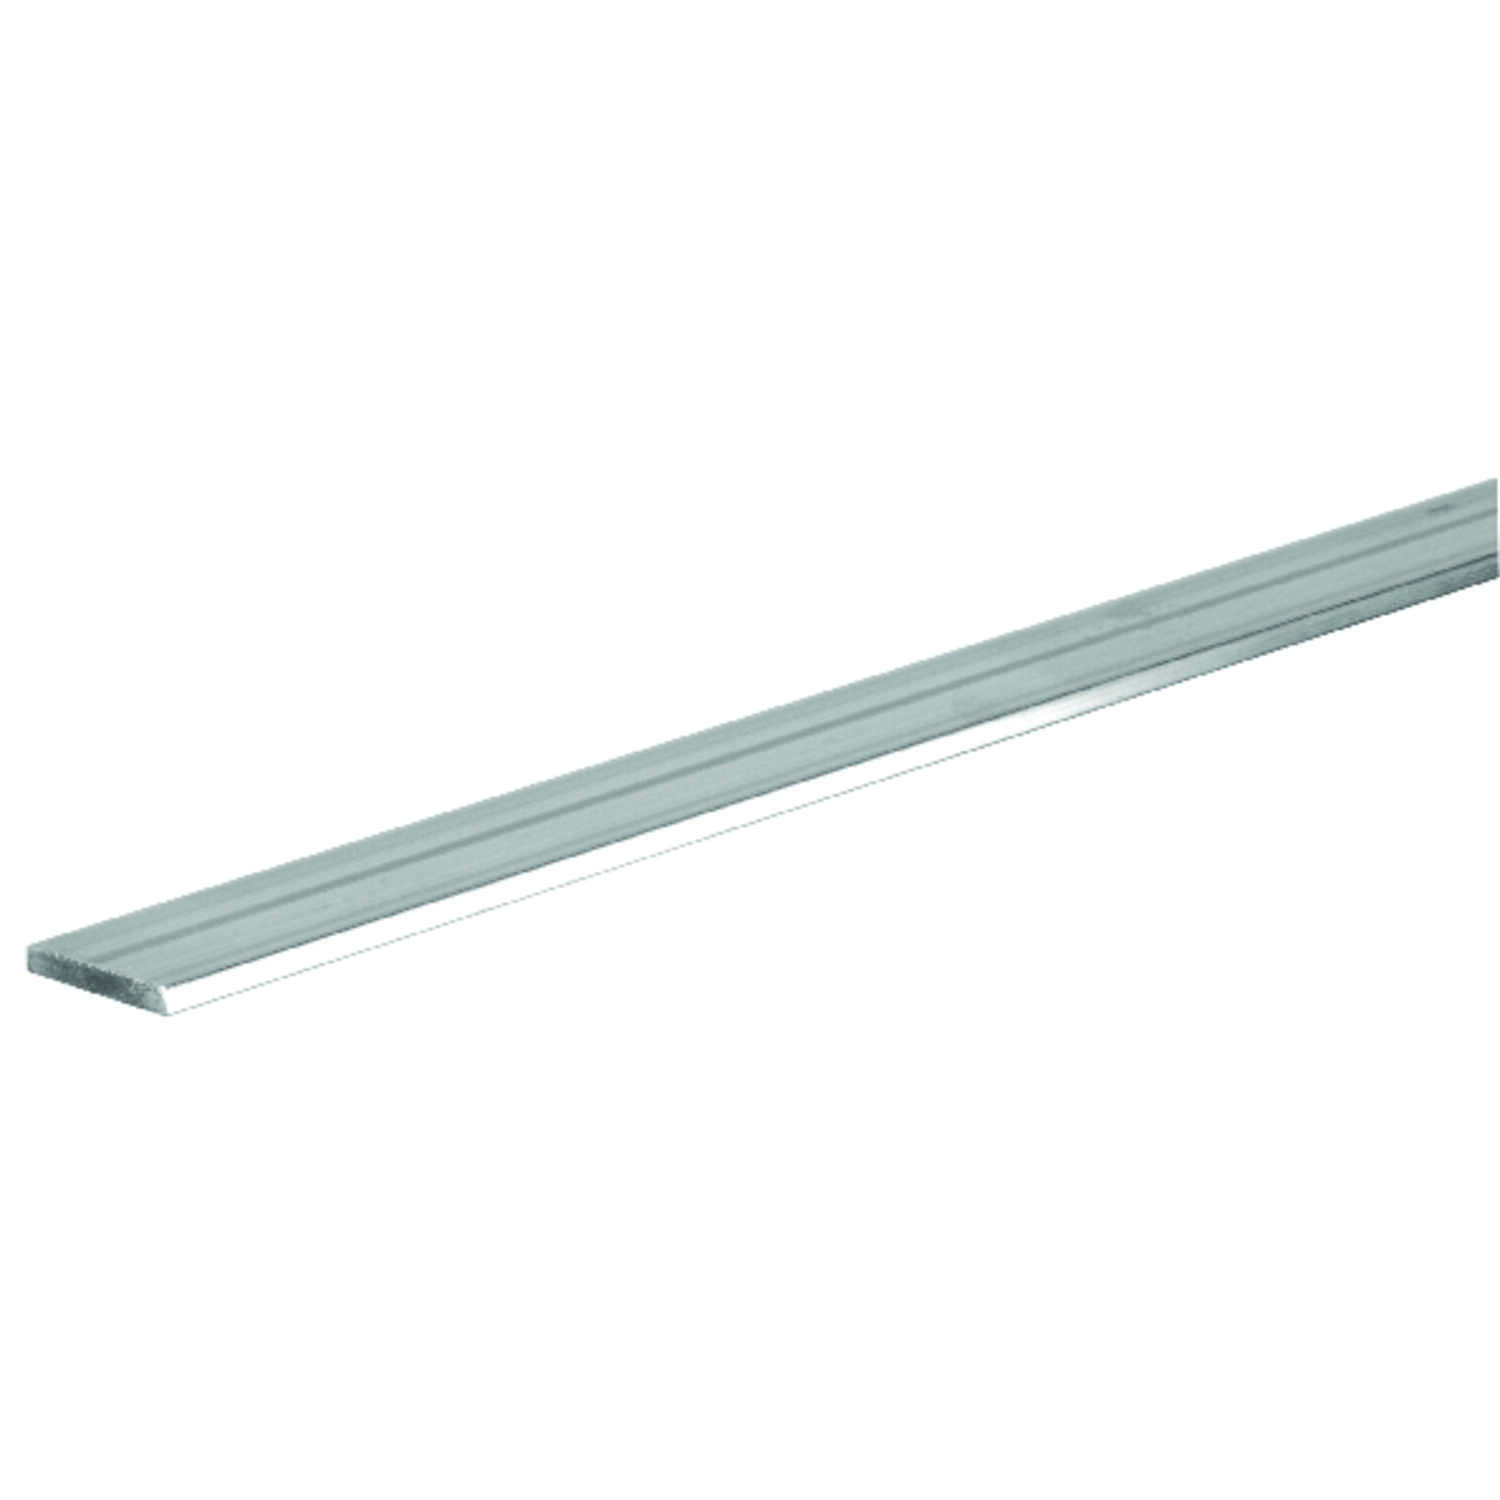 Boltmaster  0.0625 in.  x 1 in. W x 6 ft. L Weldable Aluminum Flat Bar  5 pk